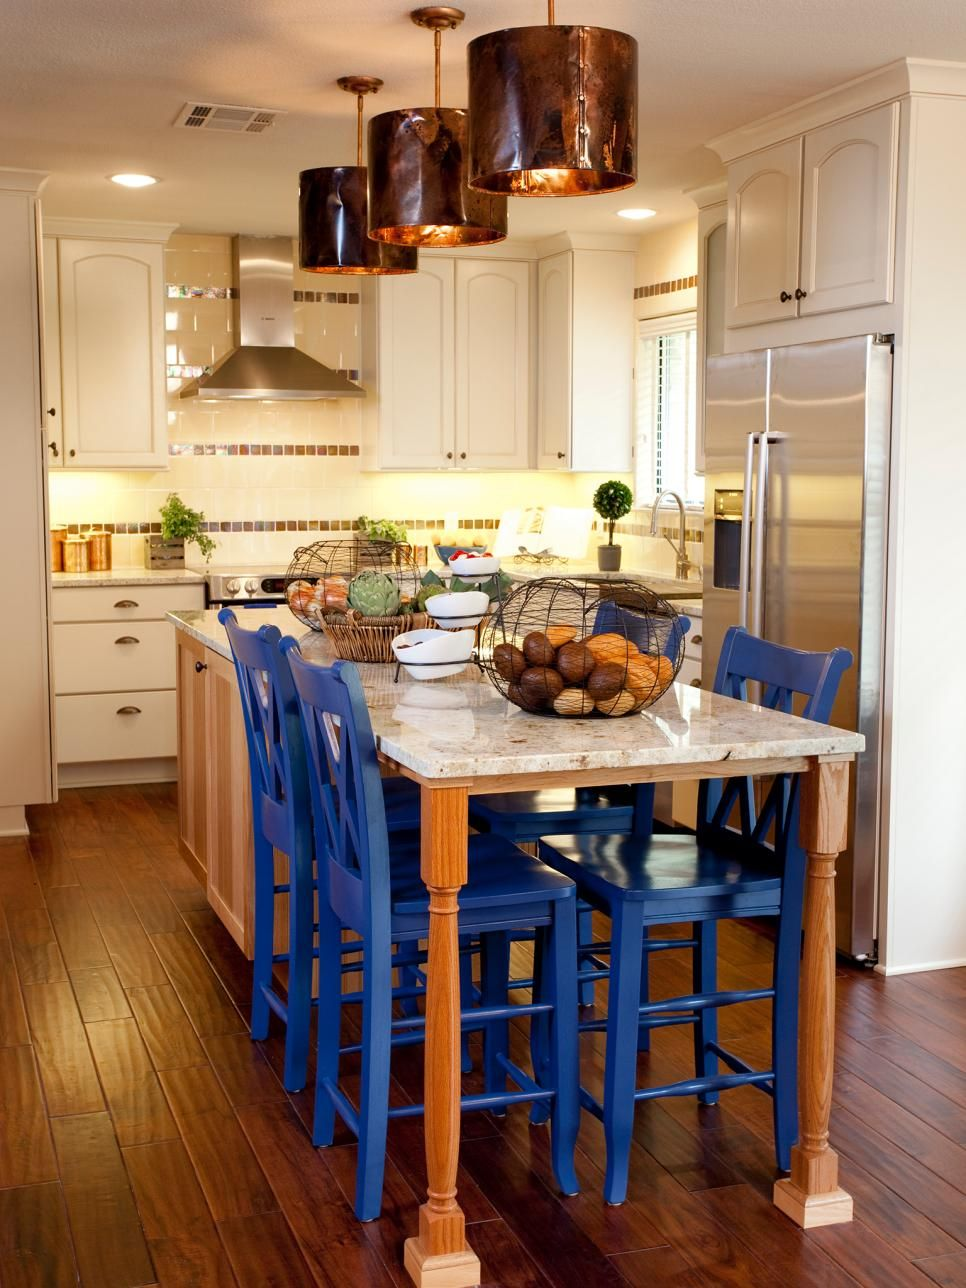 Pictures of Kitchen Chairs and Stools: Seating Option ...